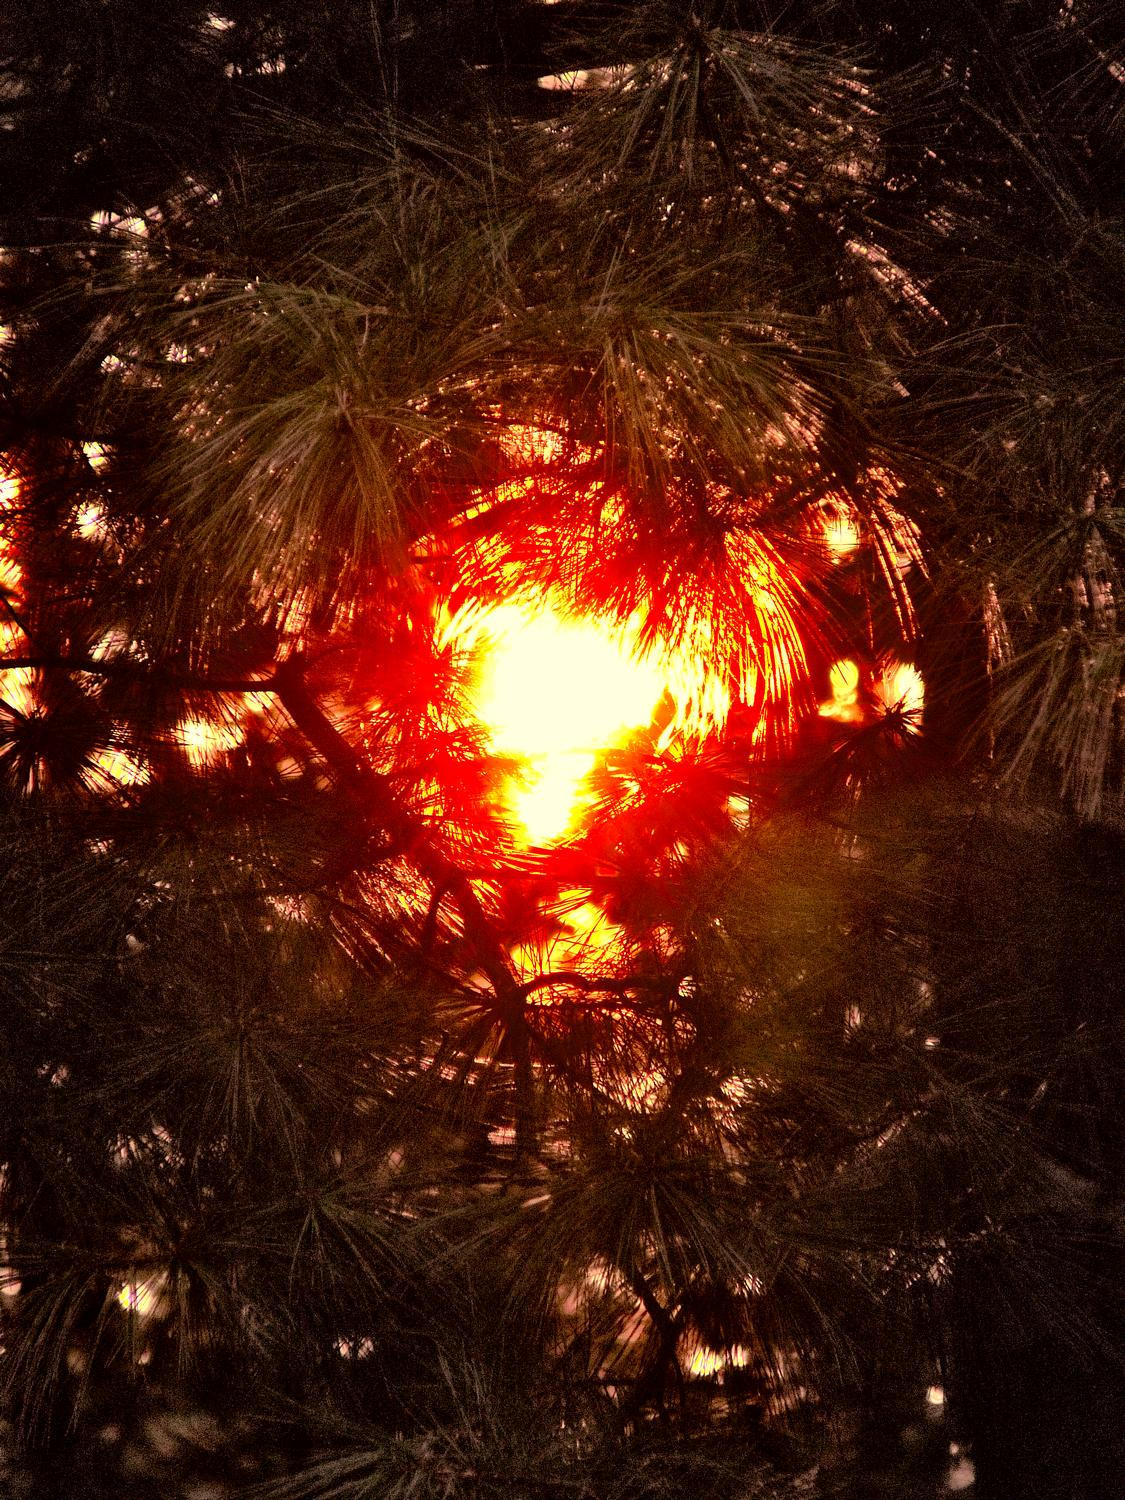 - A close look at the sun through pine needles - Panasonic DMC-FZ28 - Tony Karp, design, art, photography, techno-impressionist, techno-impressionism, aerial photography , drone , drones , dji , mavic pro , video , 3D printing - Books -